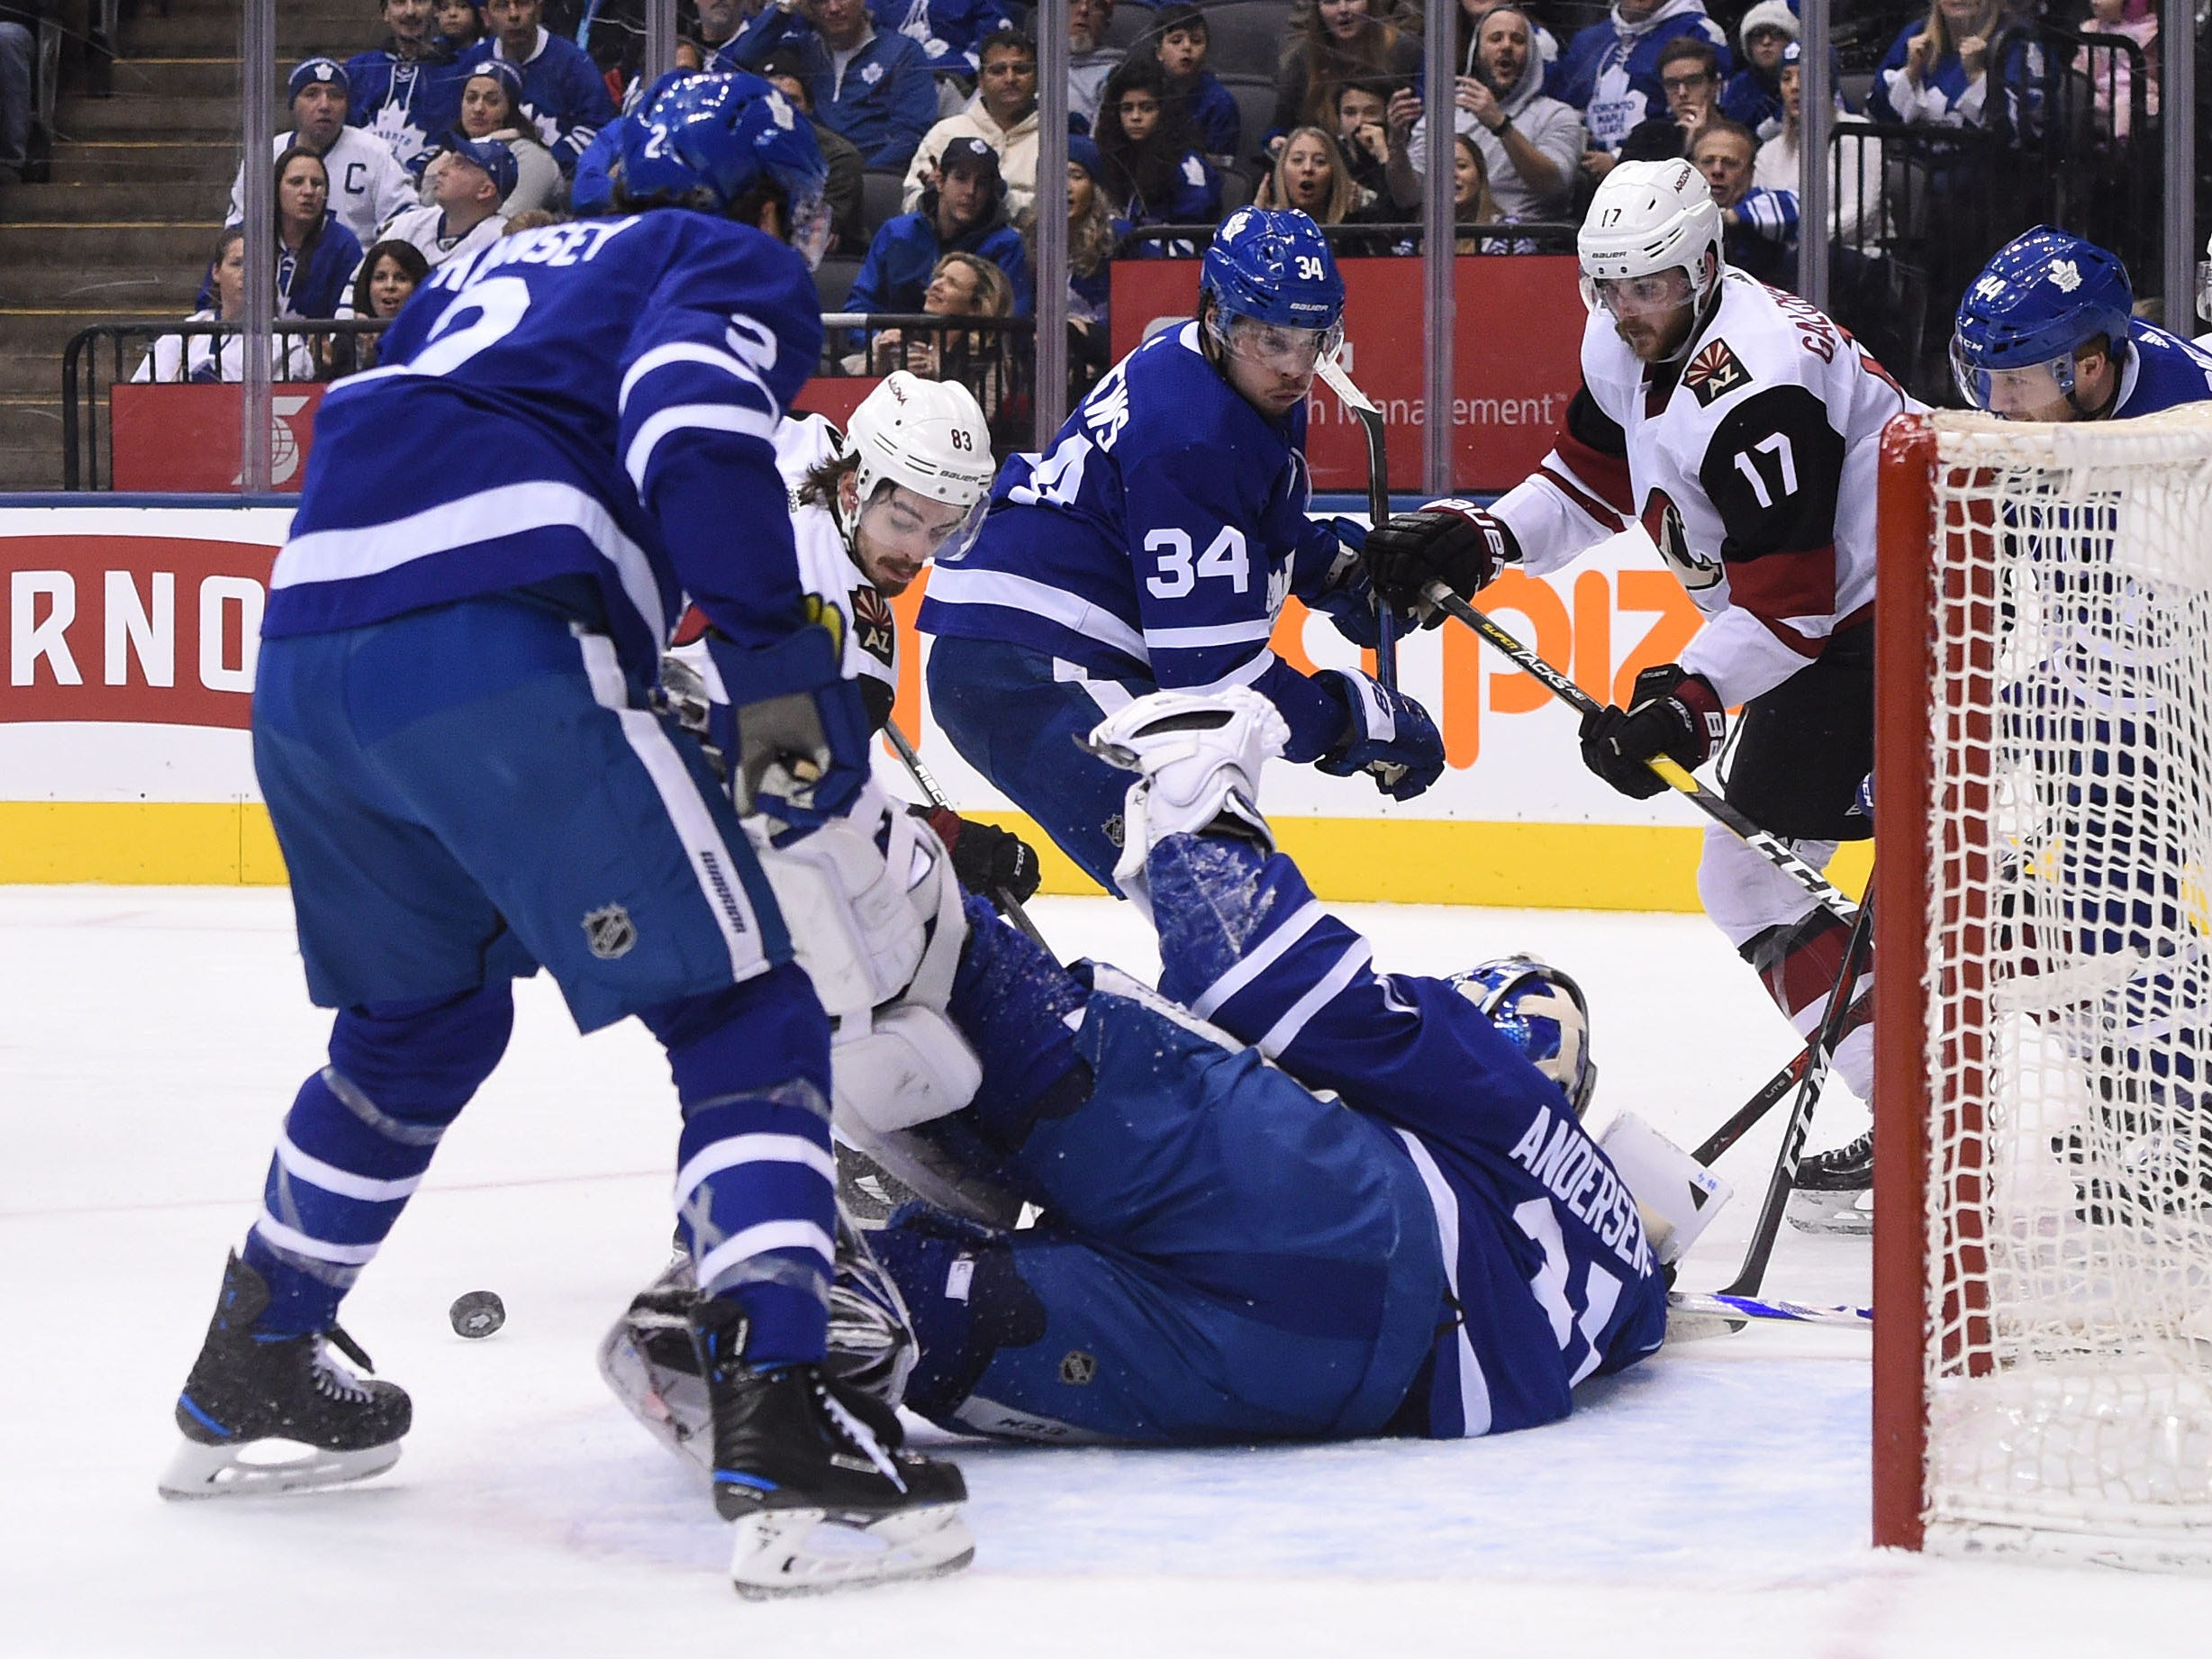 Jan 20, 2019: Toronto Maple Leafs goalie Frederik Andersen (31) makes a save against Arizona Coyotes forwards Alex Galyenchuk (17) and Conor Garland (83) in the first period at Scotiabank Arena.